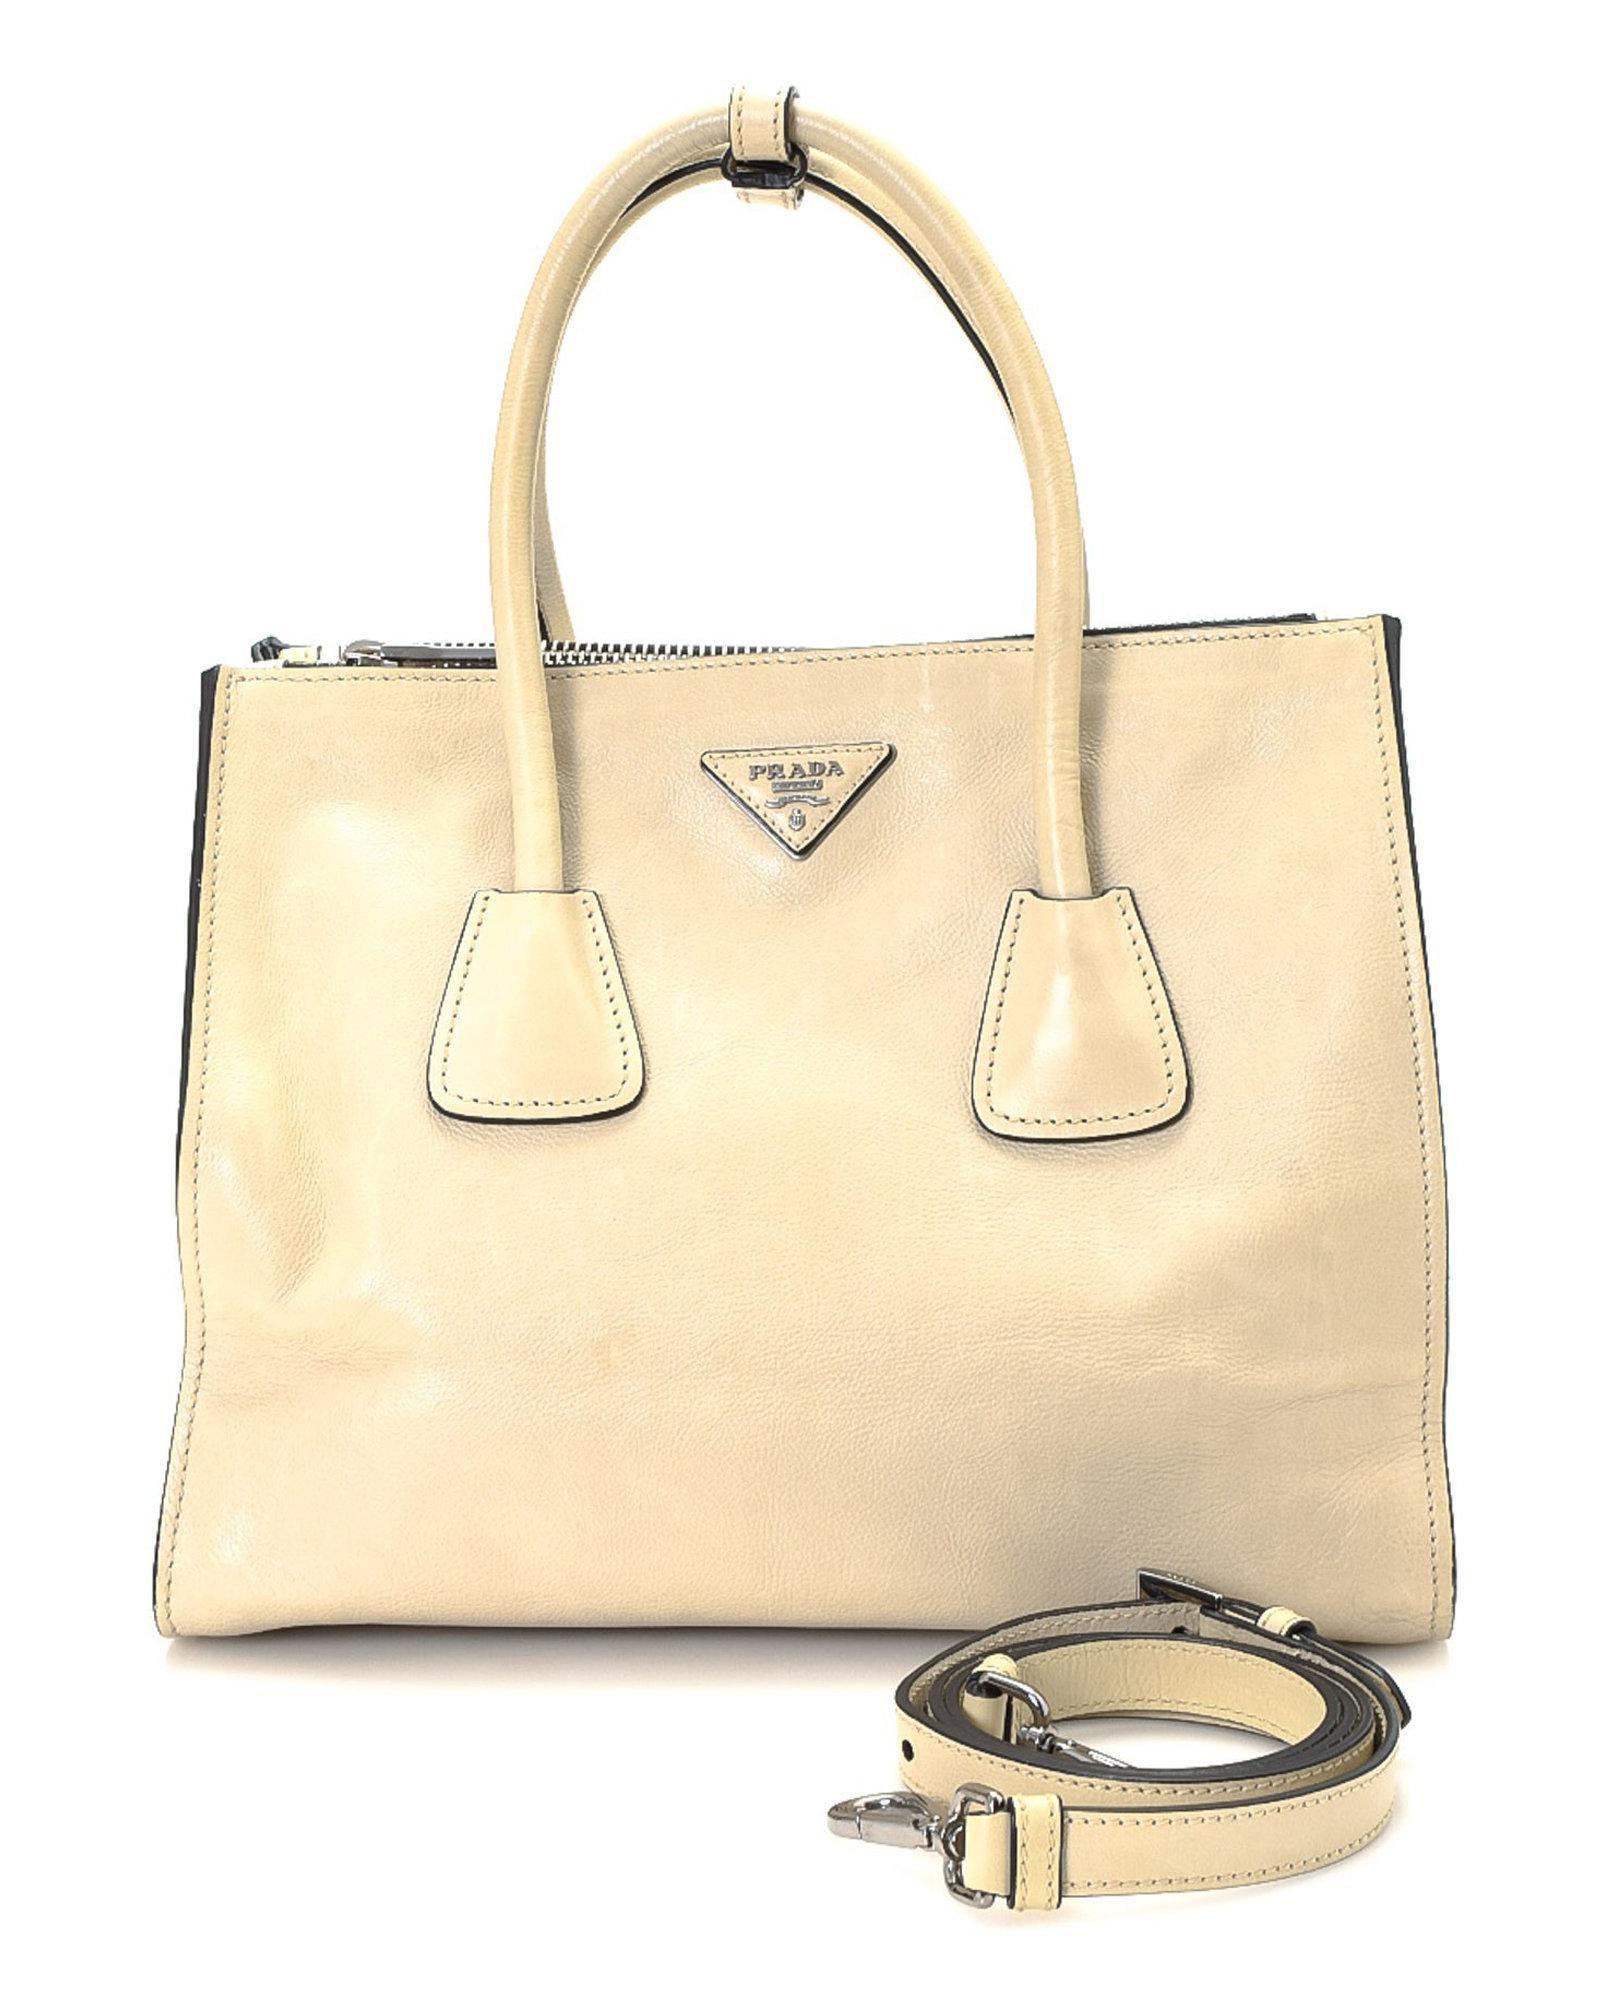 22fd79d4bc7 Lyst - Prada Two-way Leather Handbag - Vintage in Natural